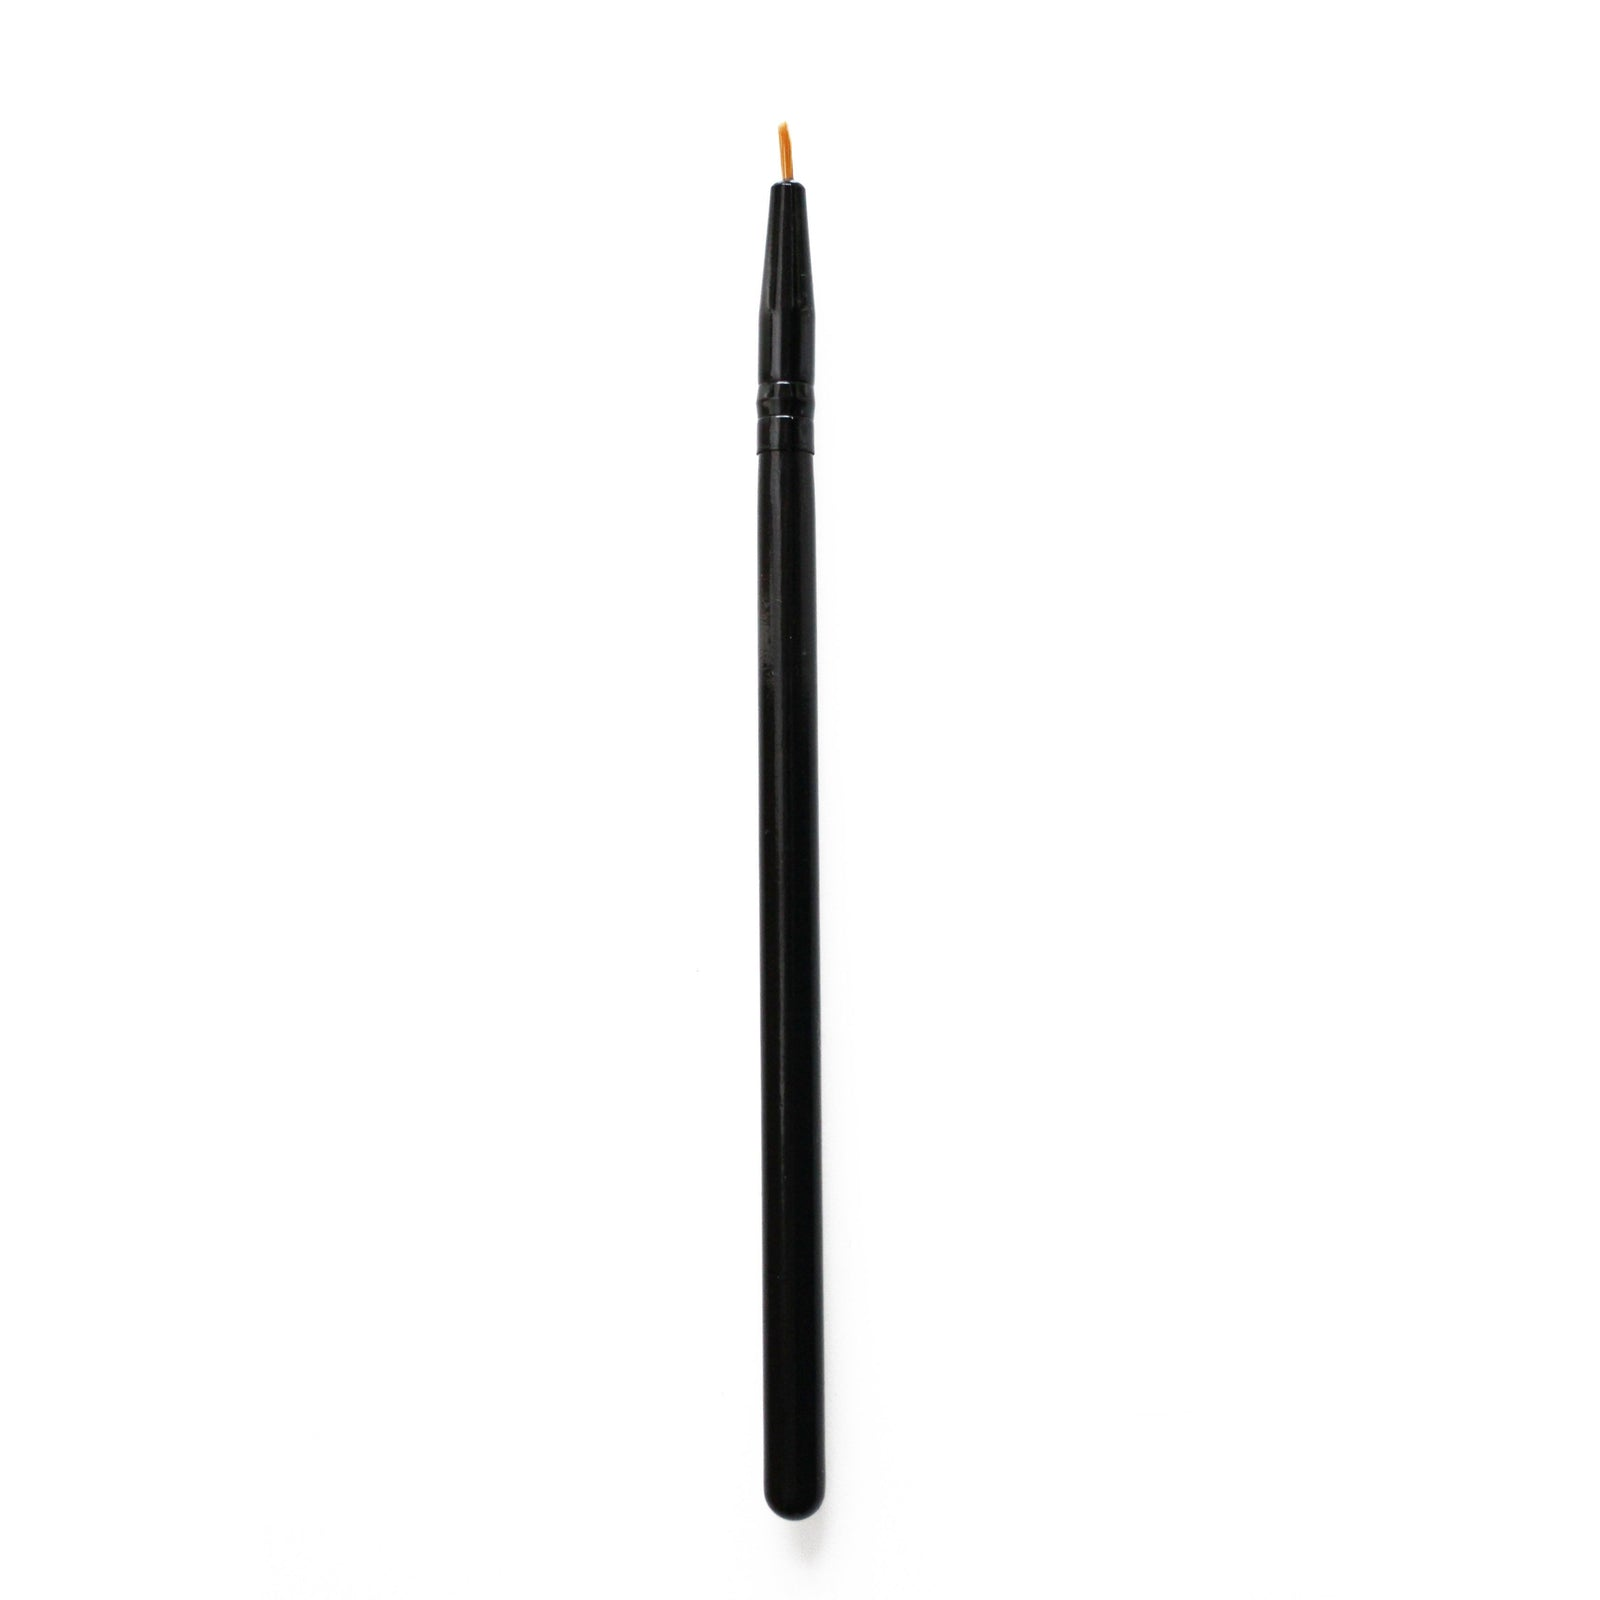 BK21 Pointed Eyeliner Brush - Crownbrush